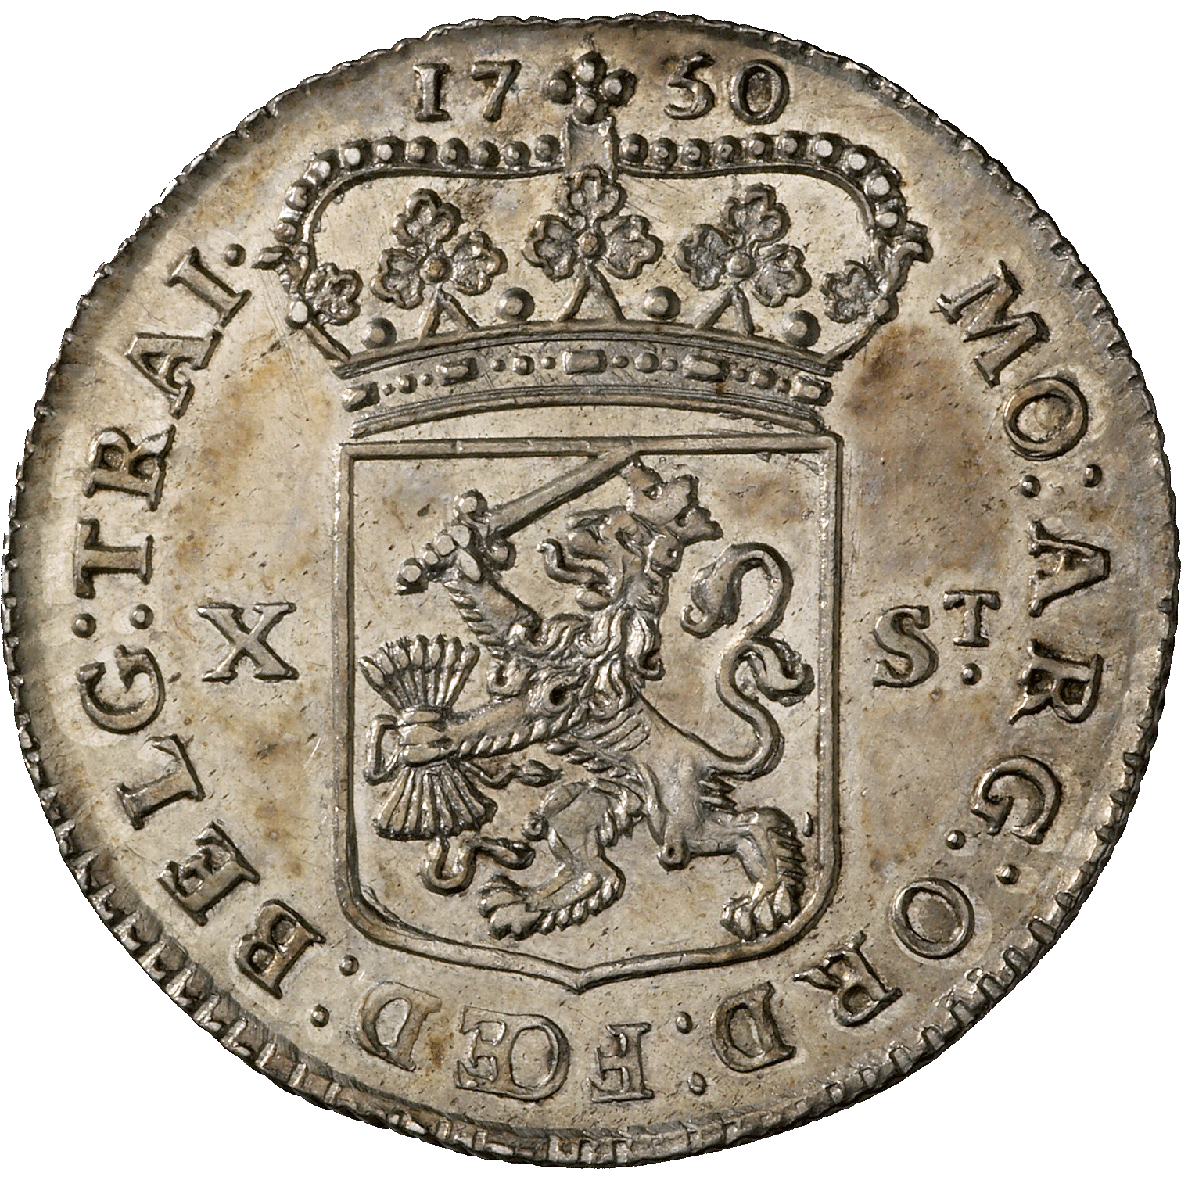 Republic of the United Netherlands, Province of Utrecht, 10 Stuivers 1750 (reverse)